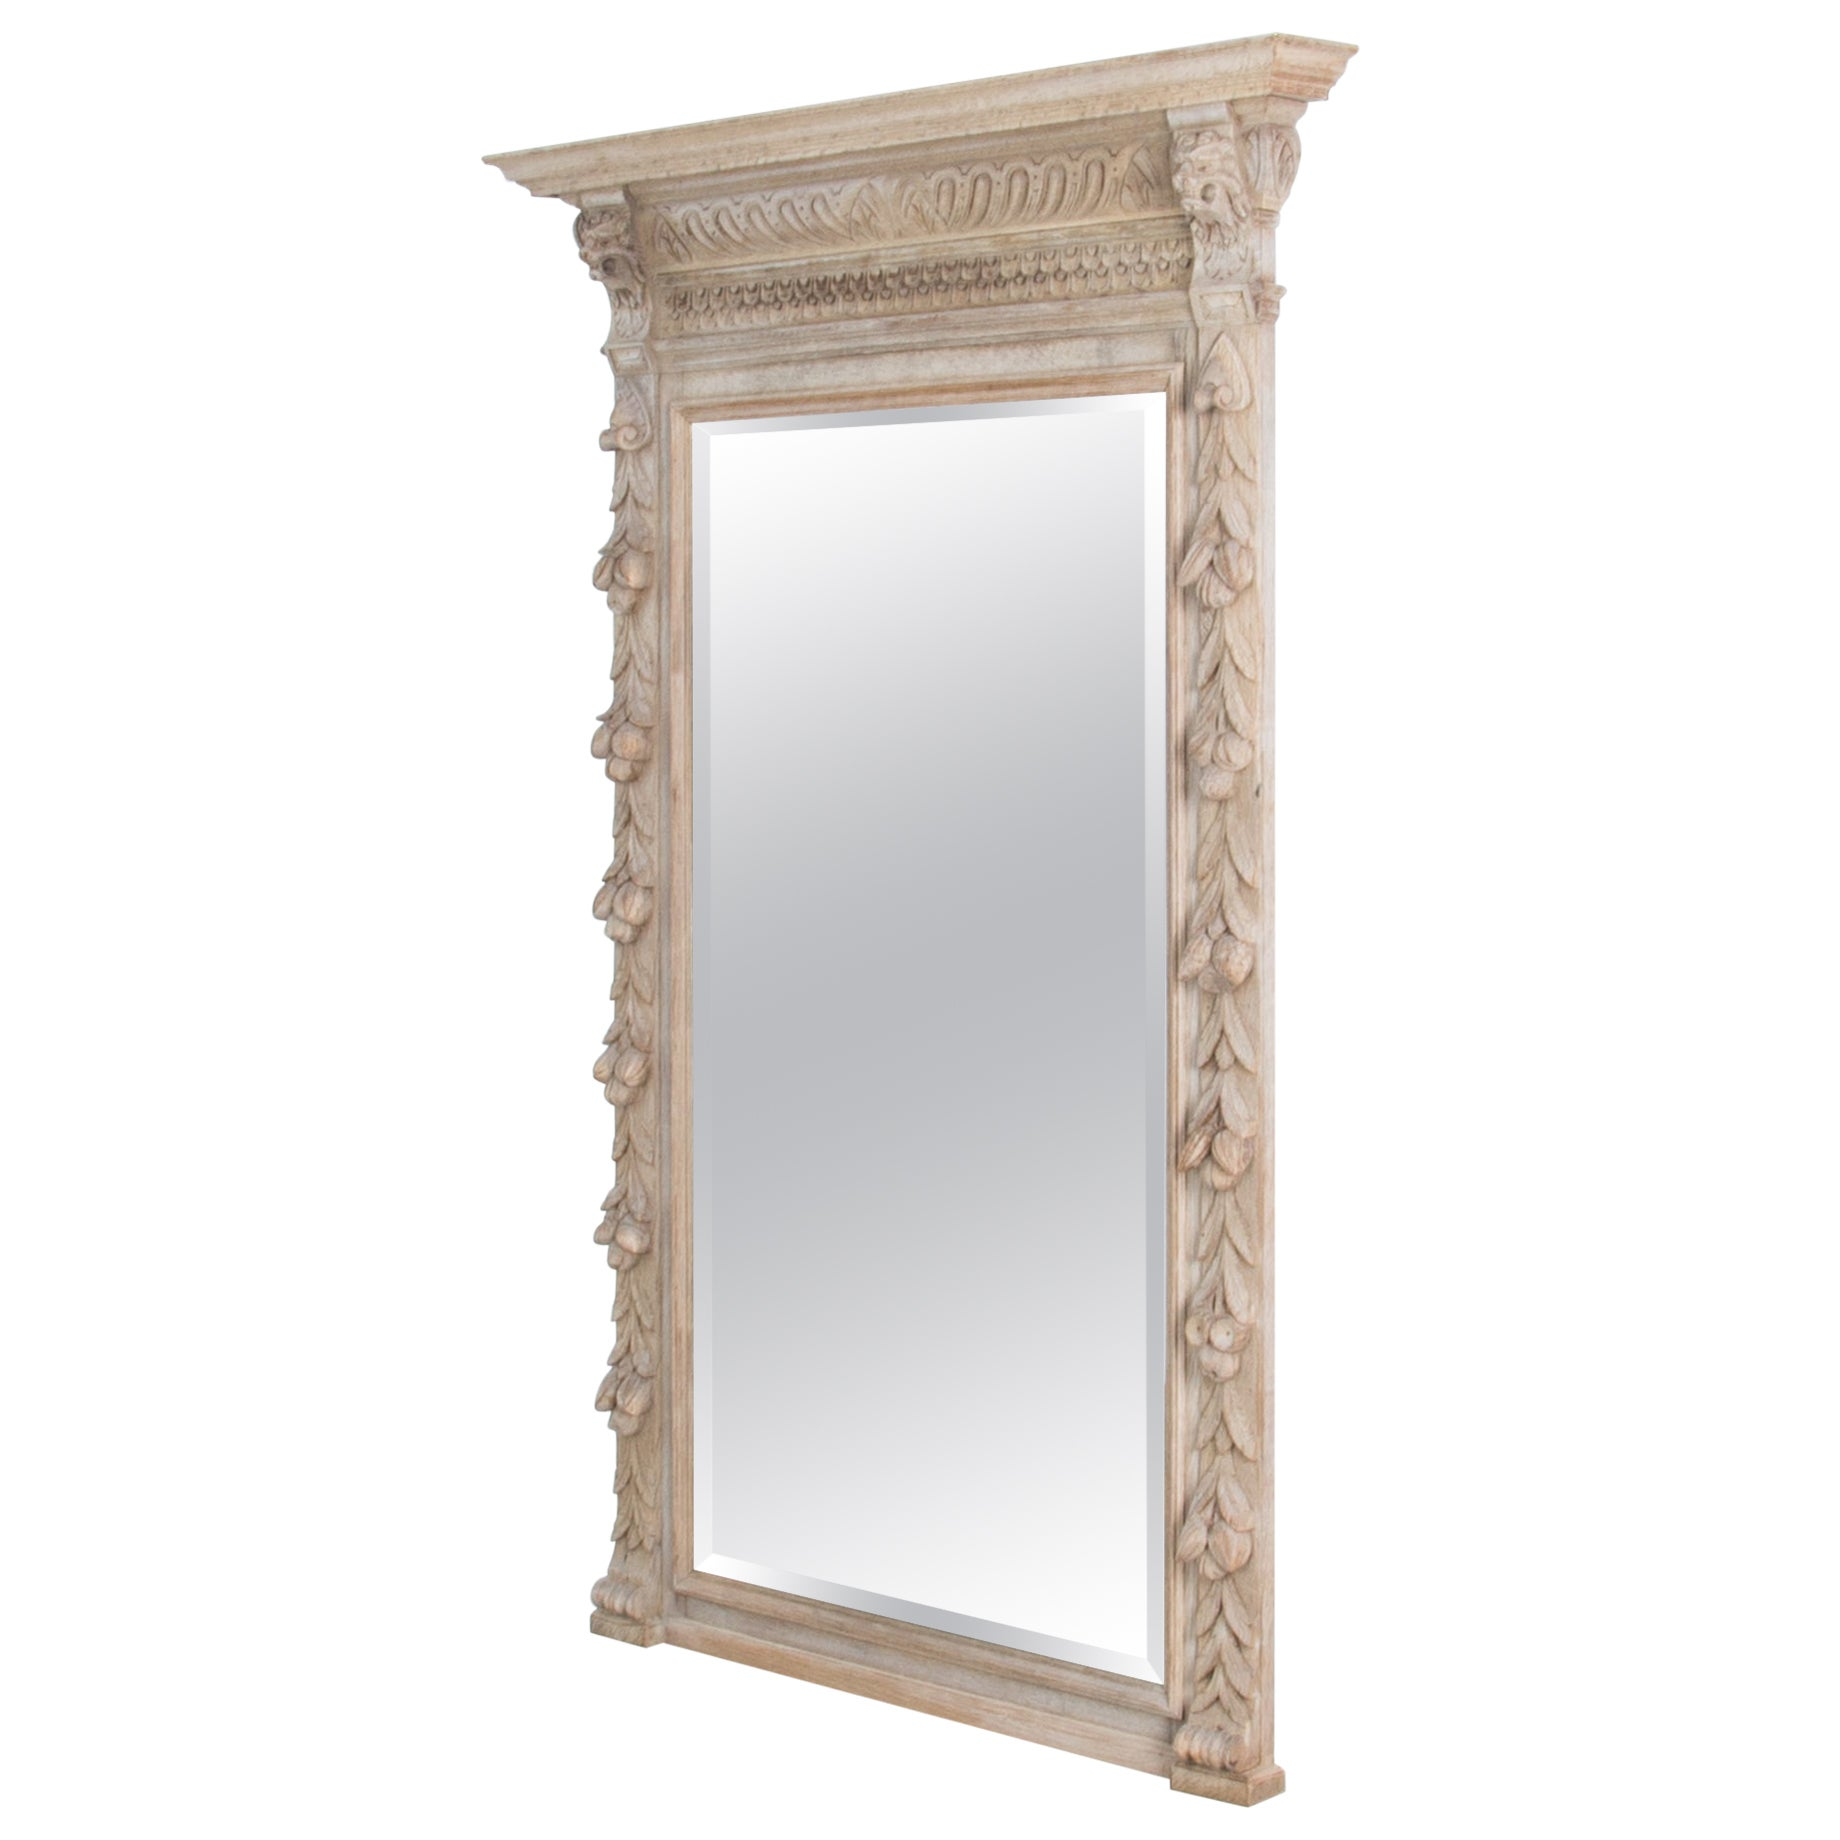 Antique Wall Mirror with Carved Wooden Frame